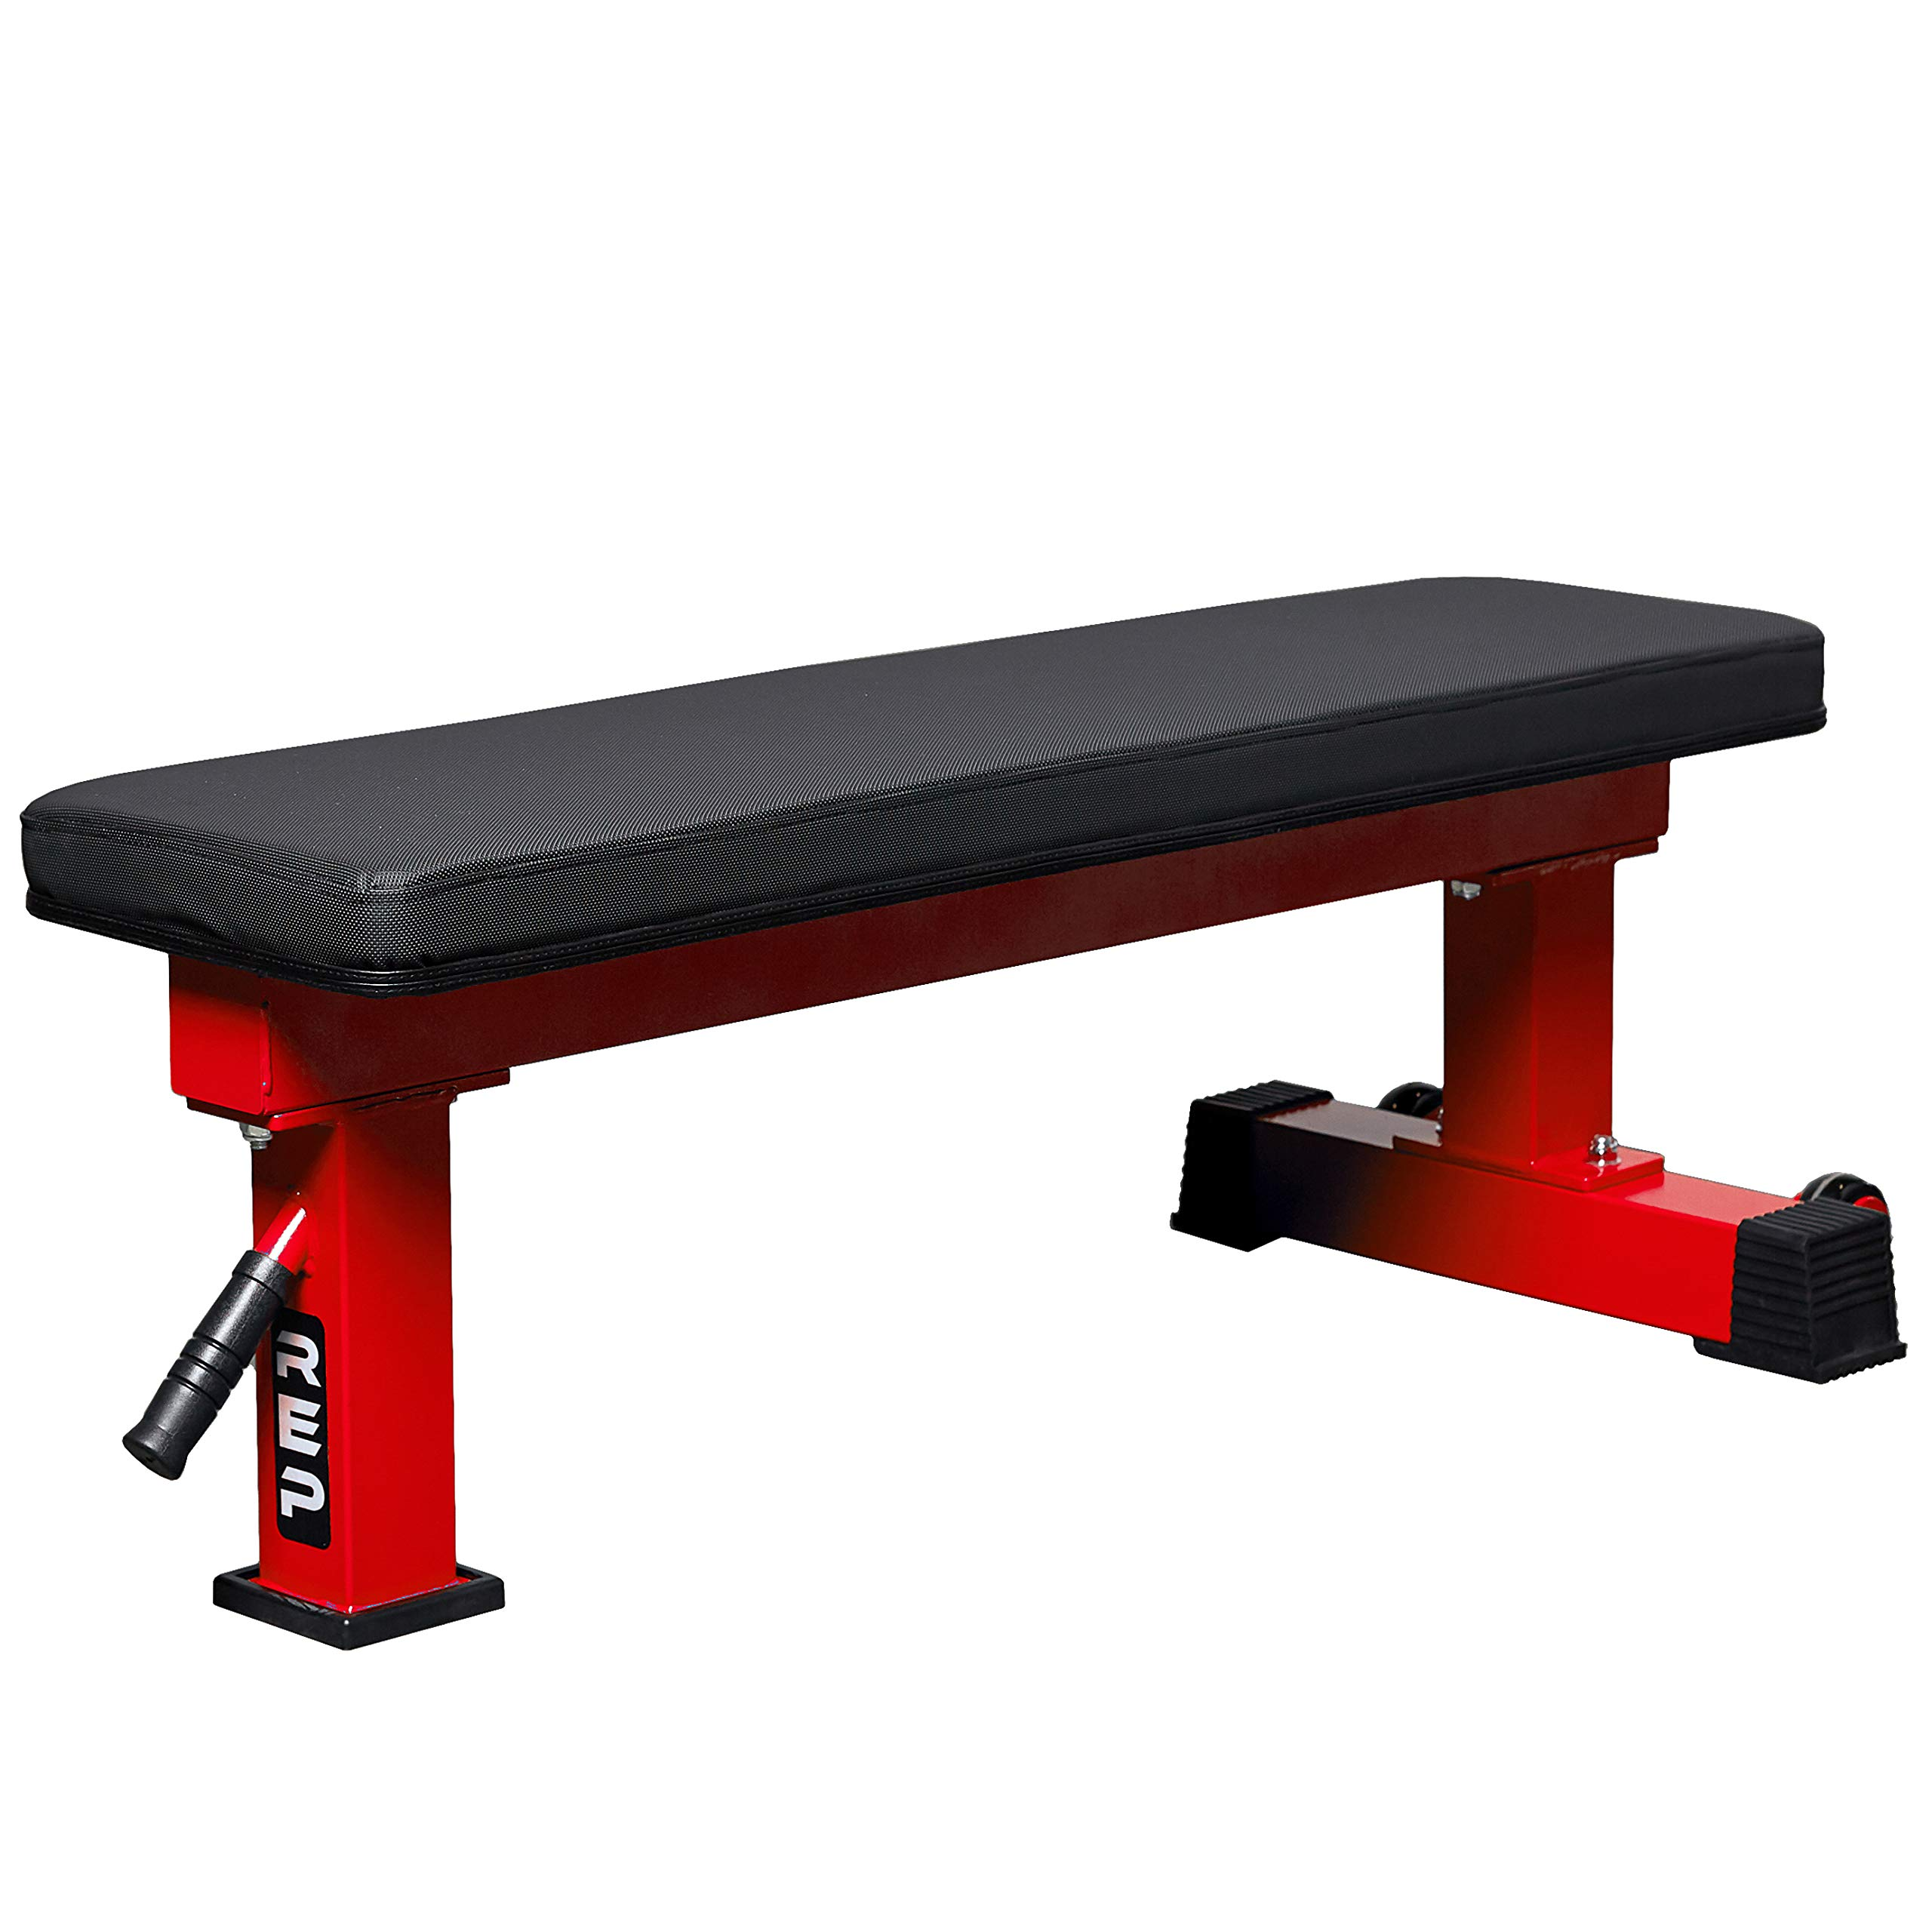 REP FITNESS FB-4000 Competition Light Flat Bench - Red by REP FITNESS